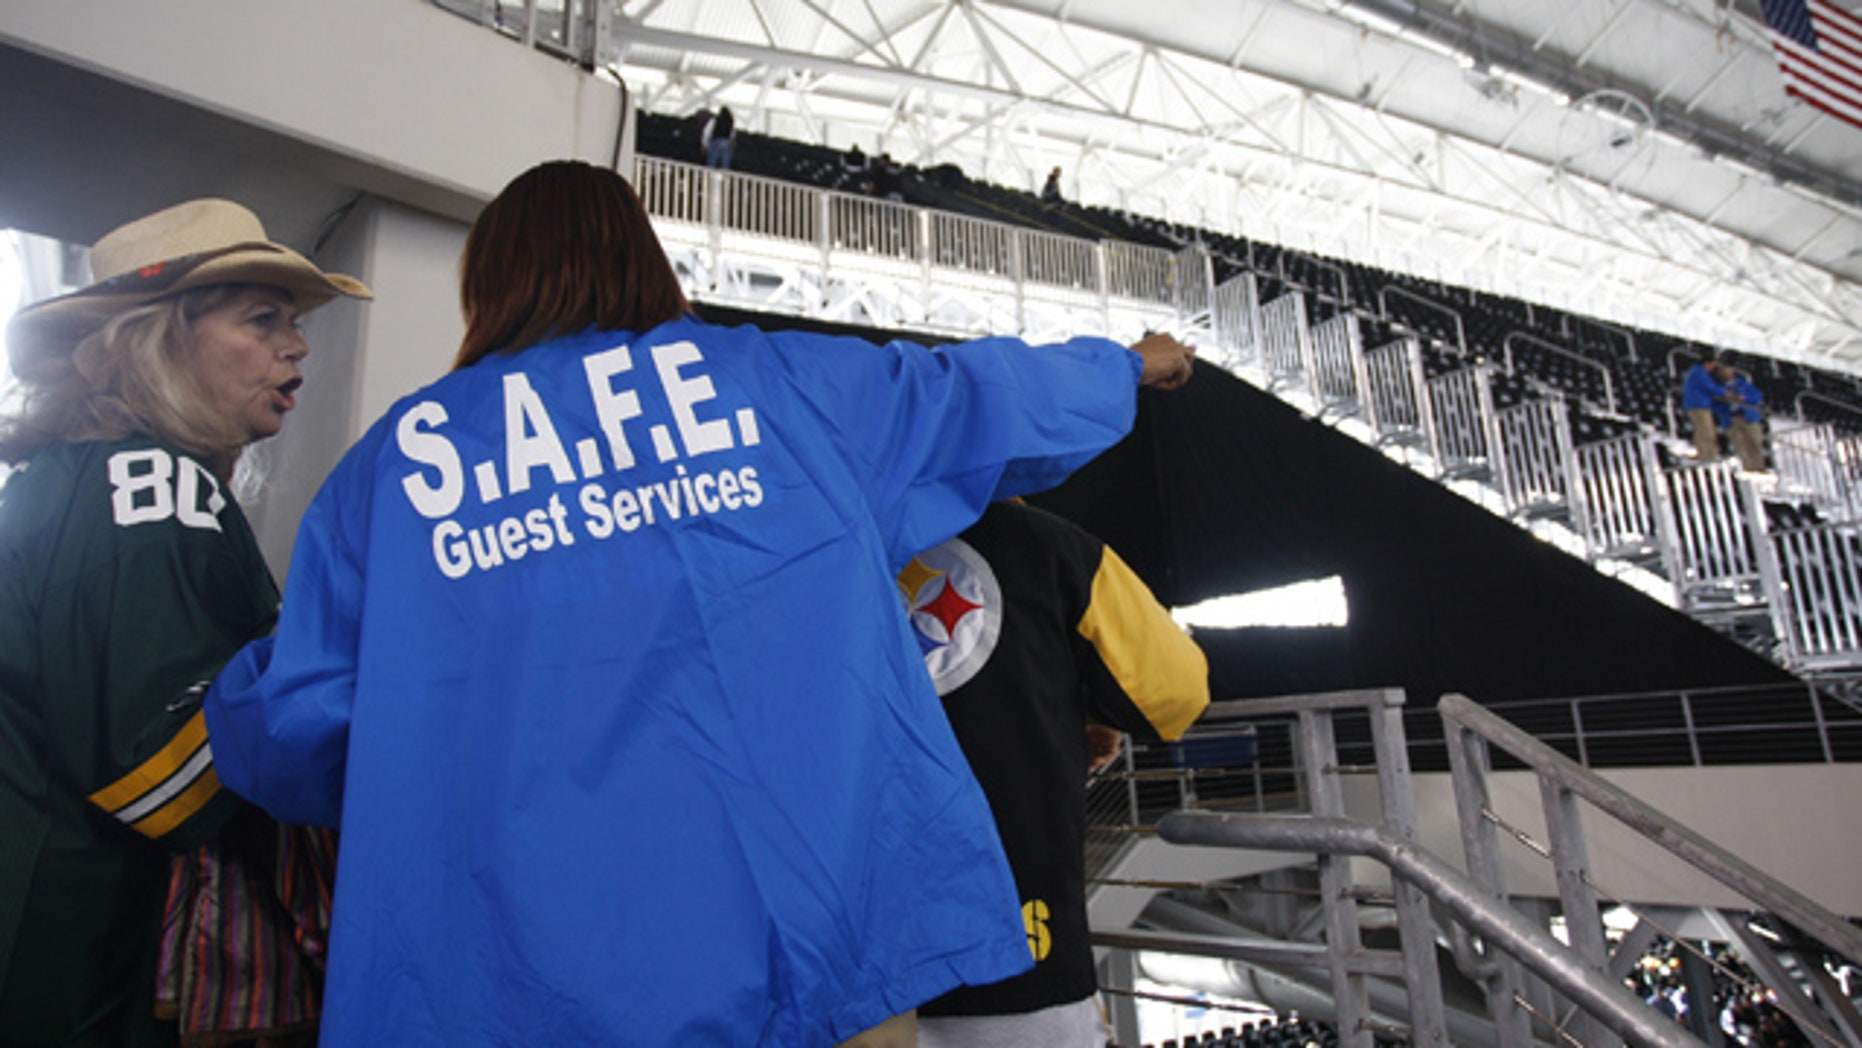 Feb. 6: A ticket-holder, left, and a guest services worker discuss the situation after some fans were denied access to the seats they bought for Super Bowl XLV at Cowboys Stadium in Arlington, Texas.